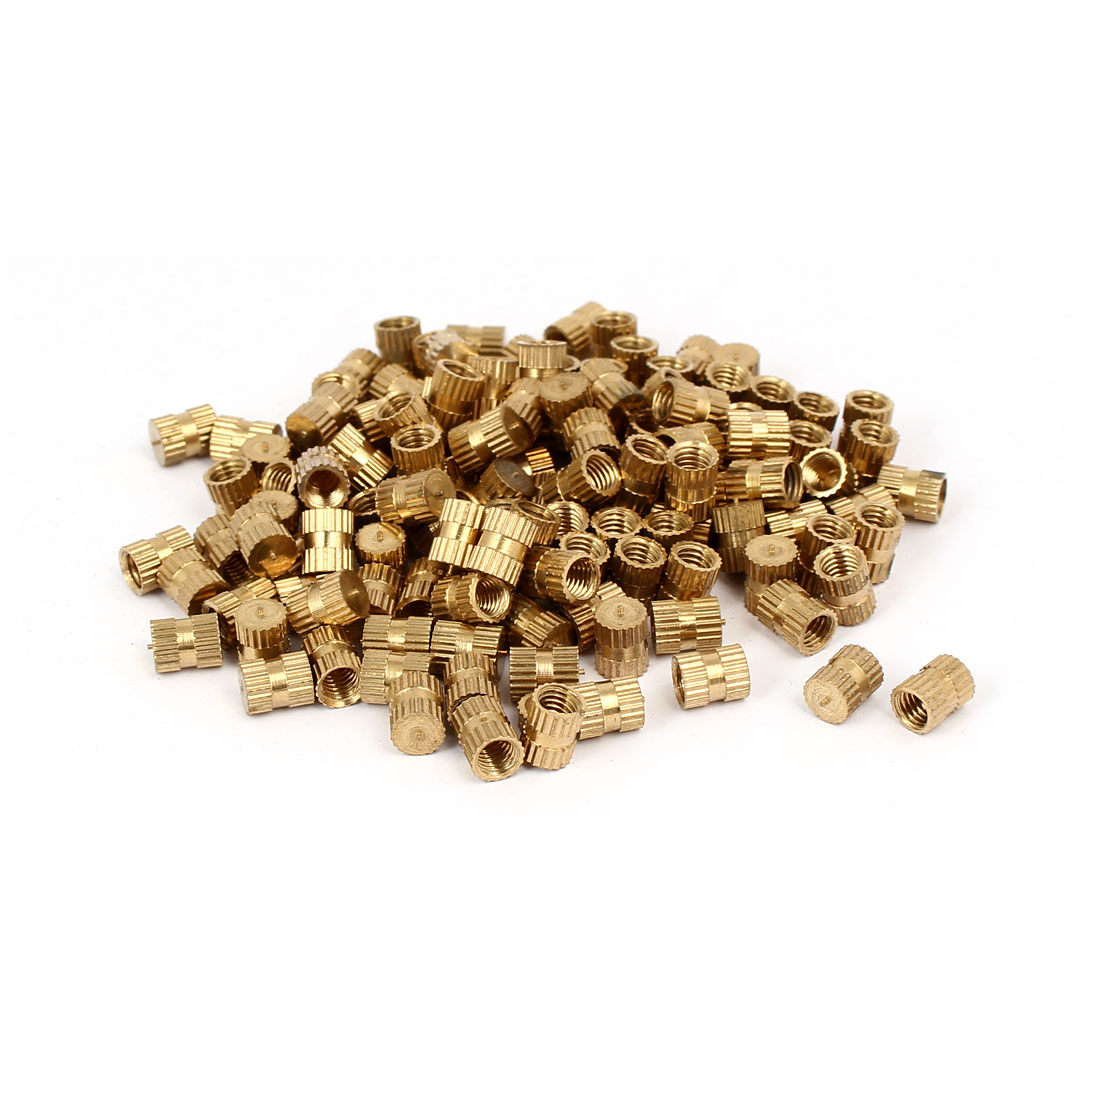 M5 x 8mm 6.3mm OD Brass Injection Molding Embedded Knurled Thumb Nut 100PCS